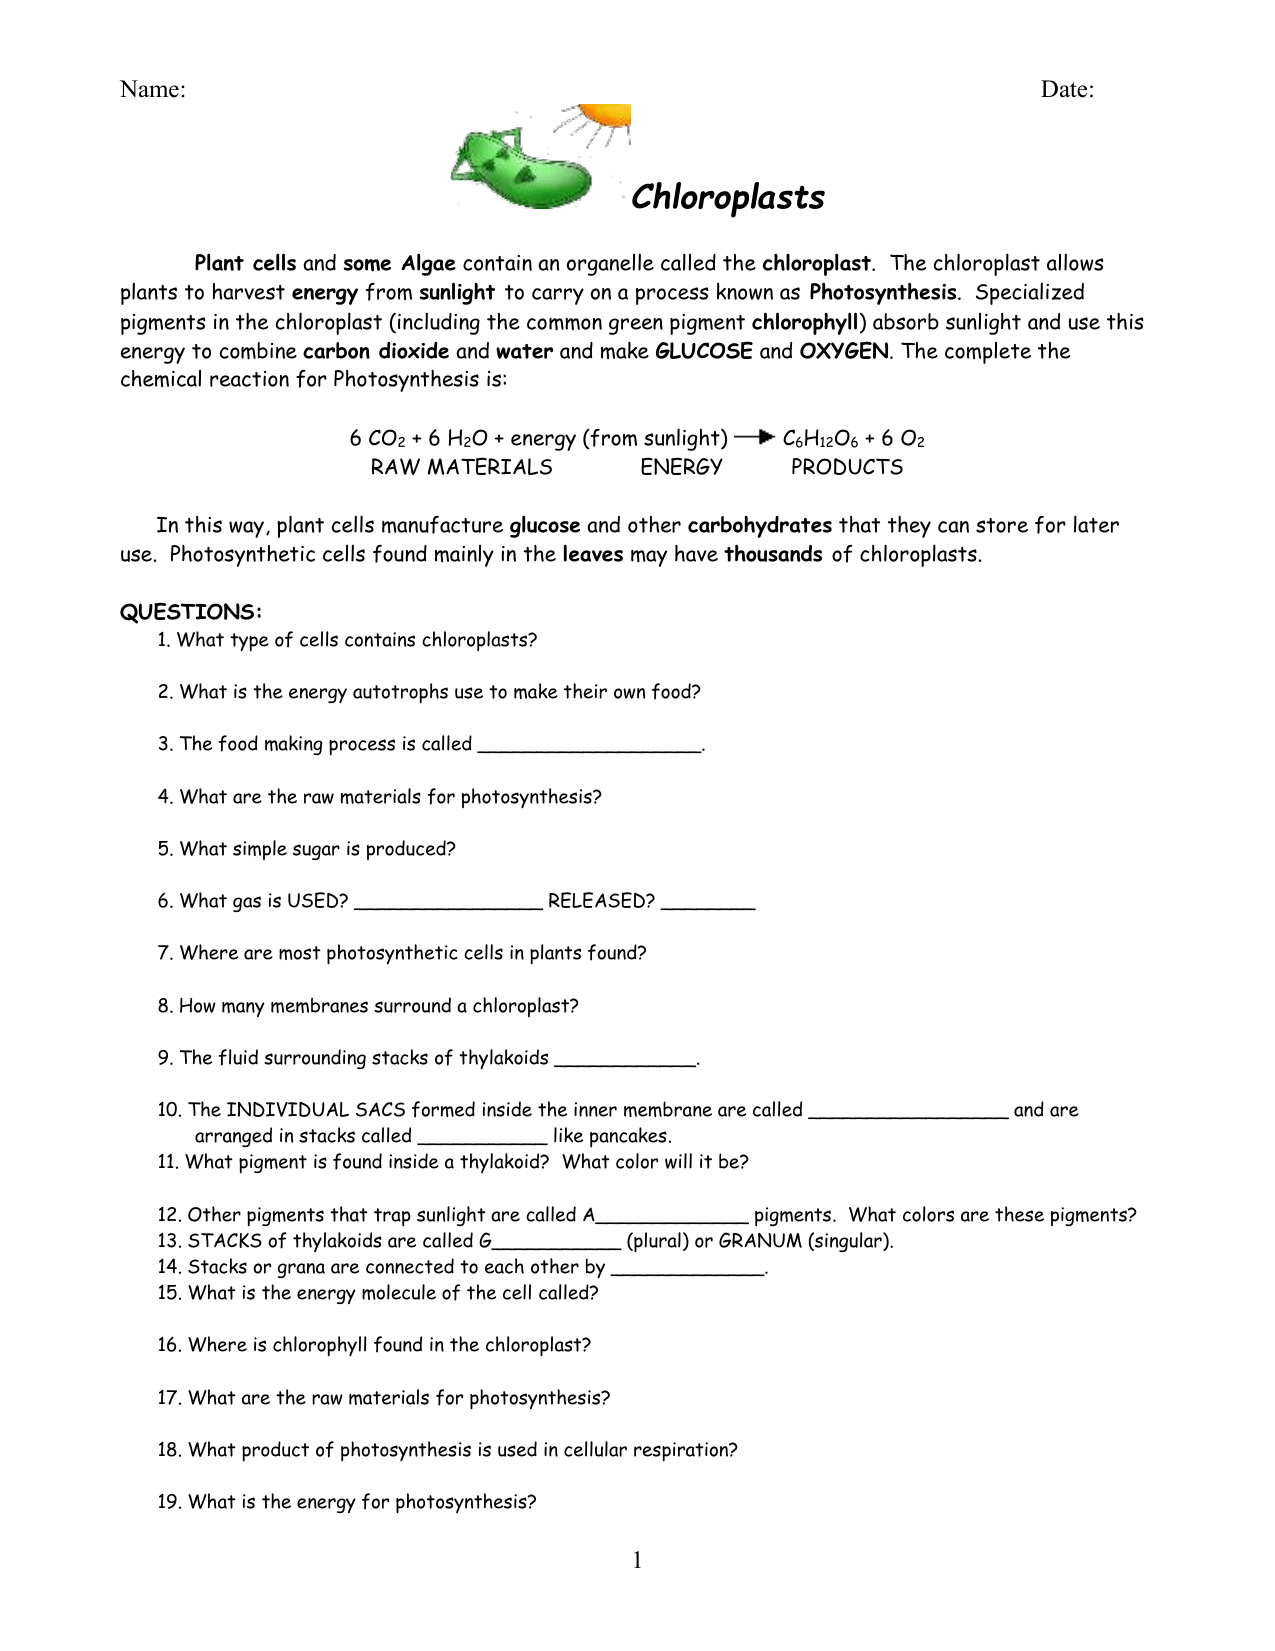 Chloroplasts Worksheet